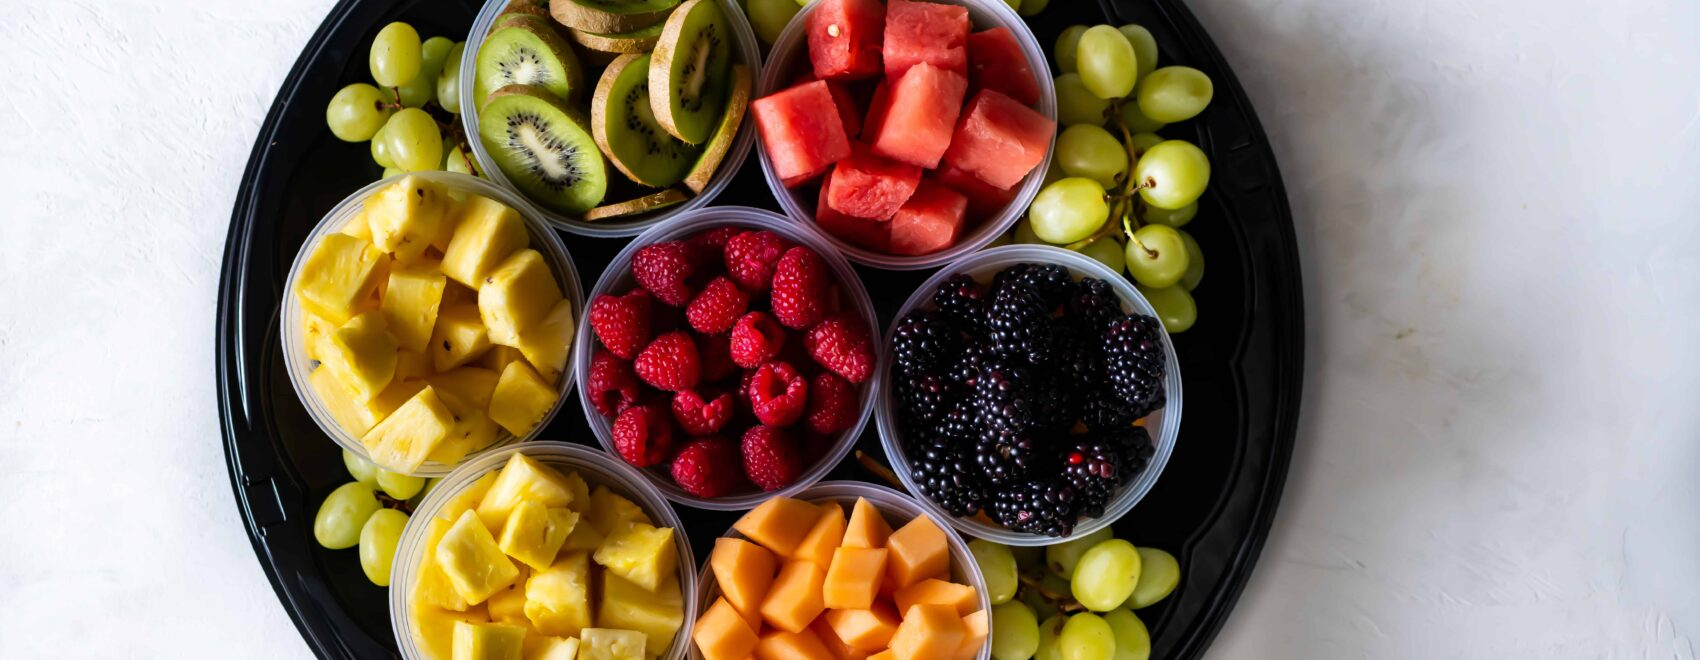 Fruit tray filled with berries, watermelon, grapes, kiwi, melon and pineapple